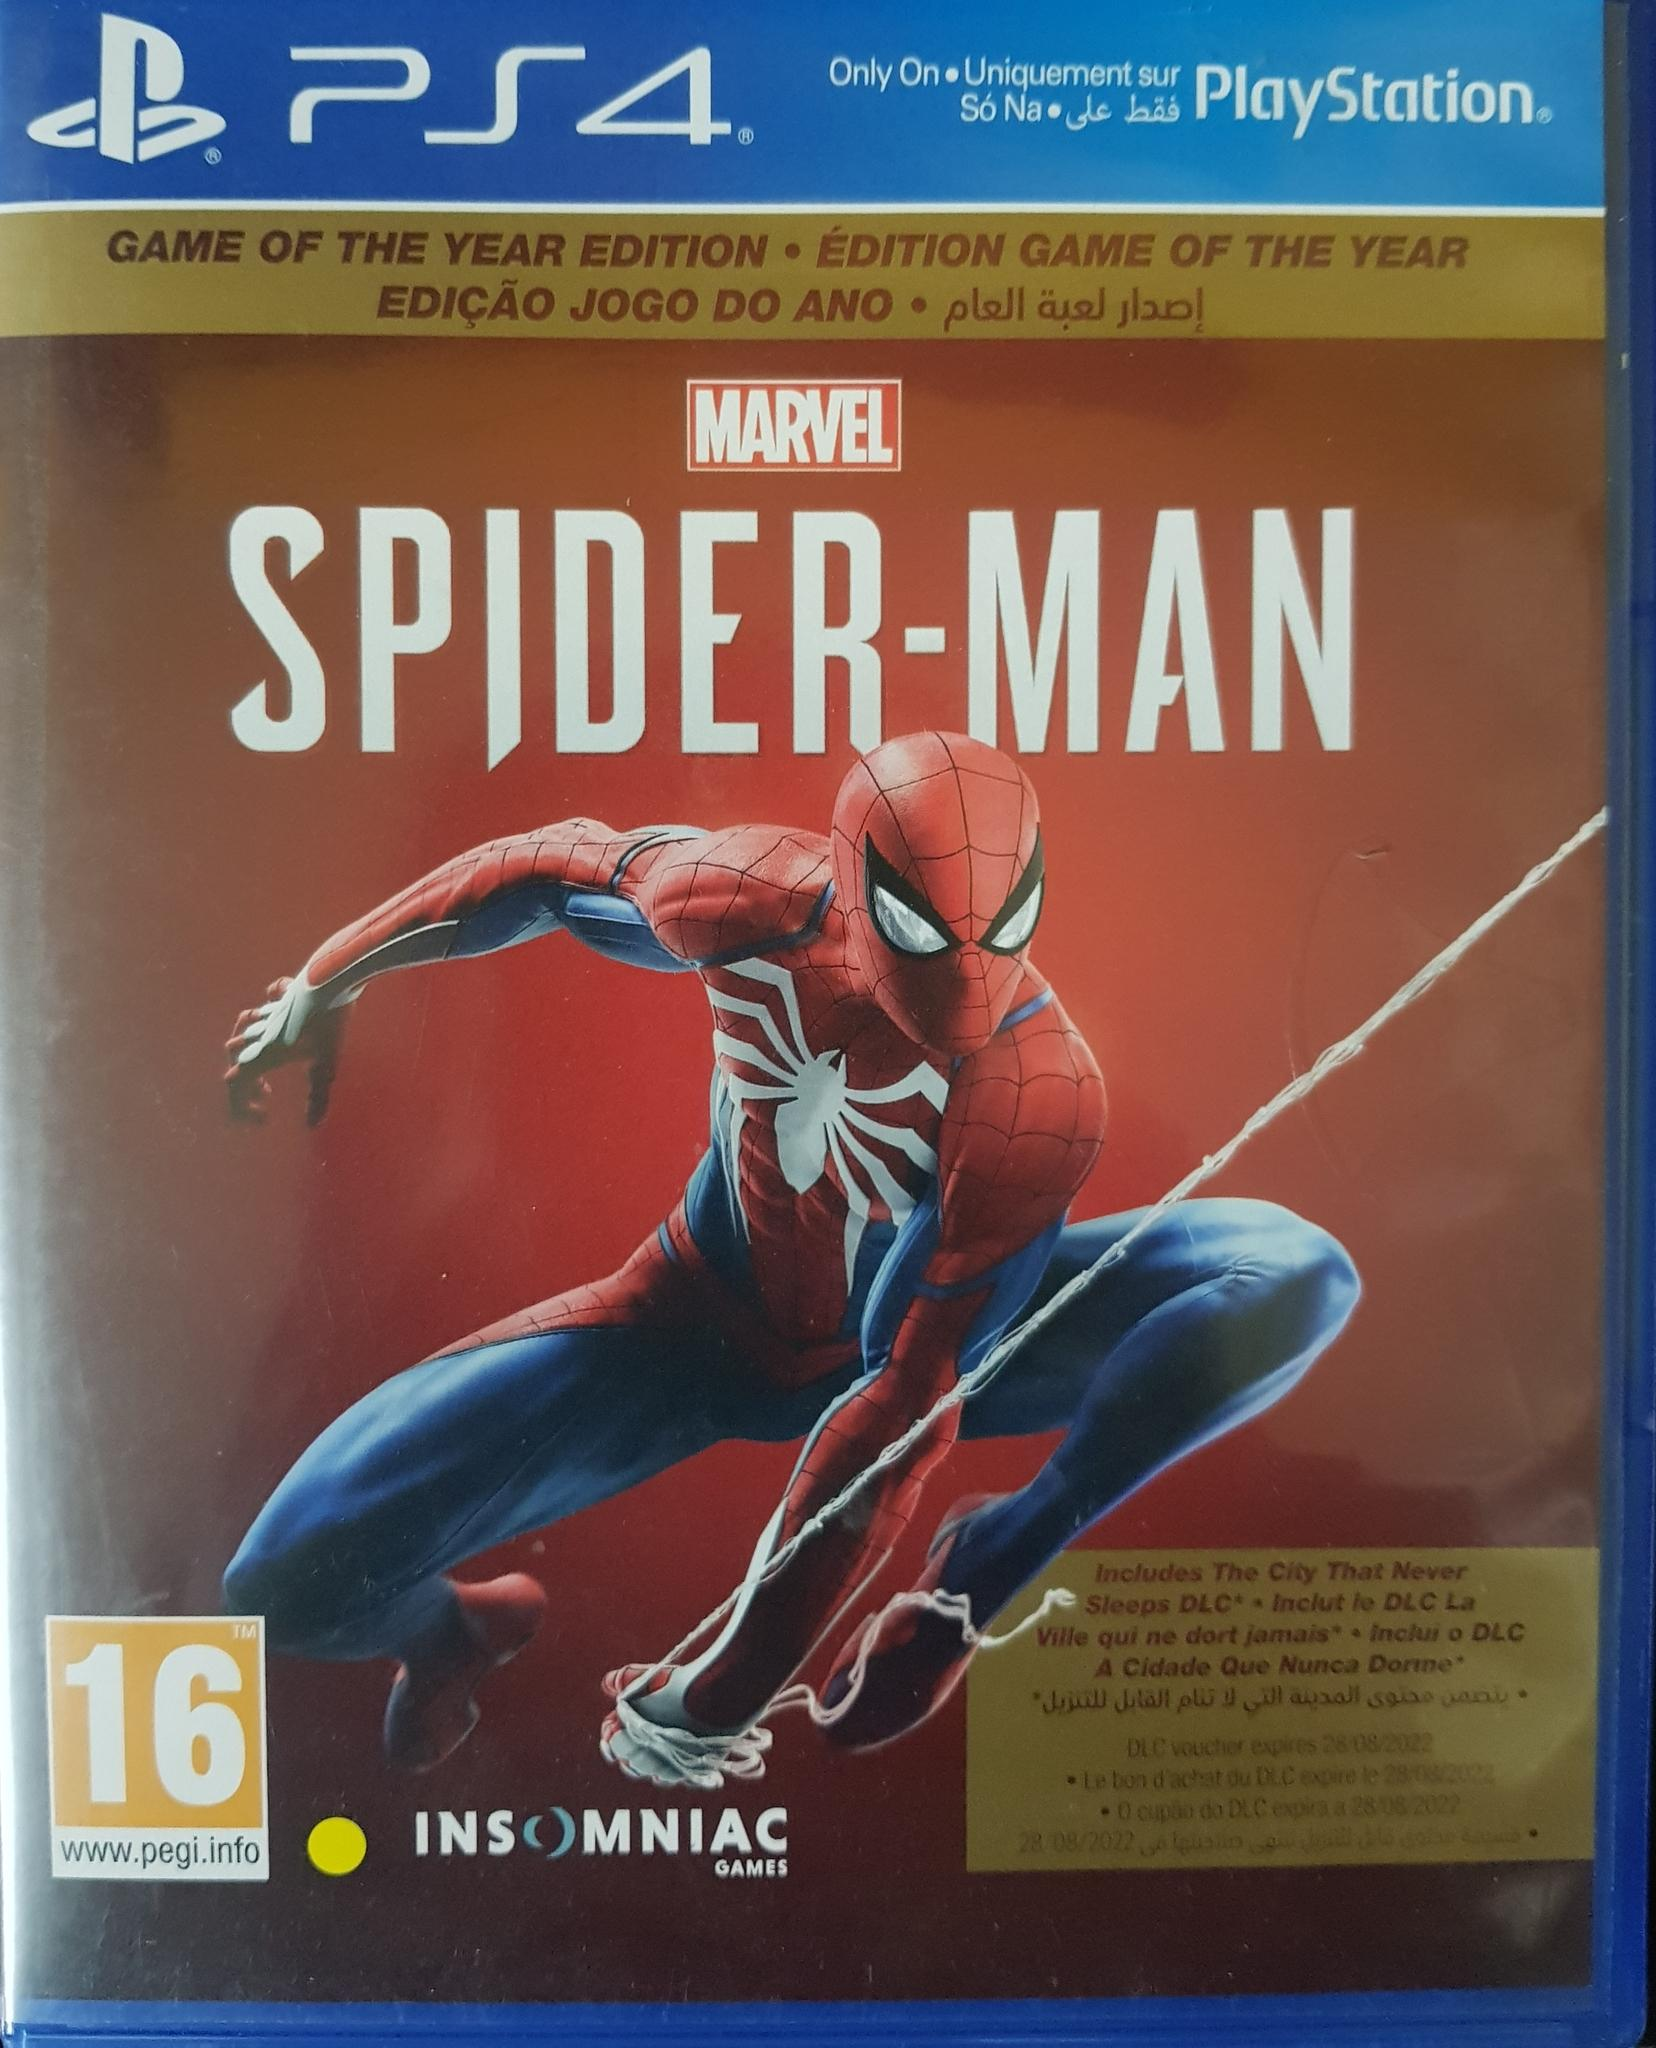 PS 4 game CD